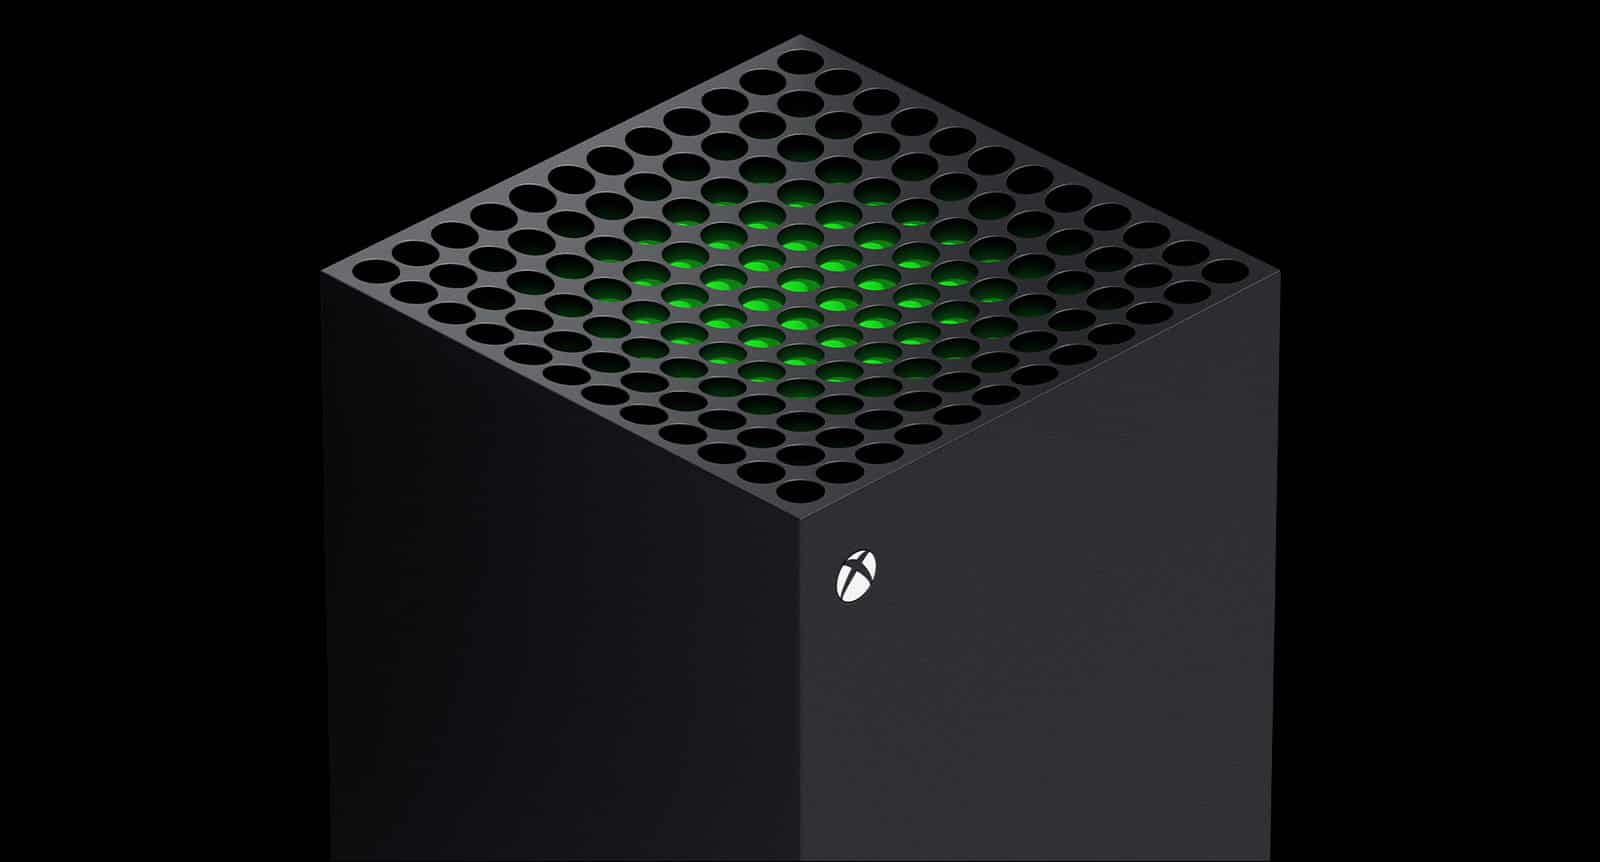 Microsoft Xbox Series X Next-Gen One Smart Delivery Loading Times